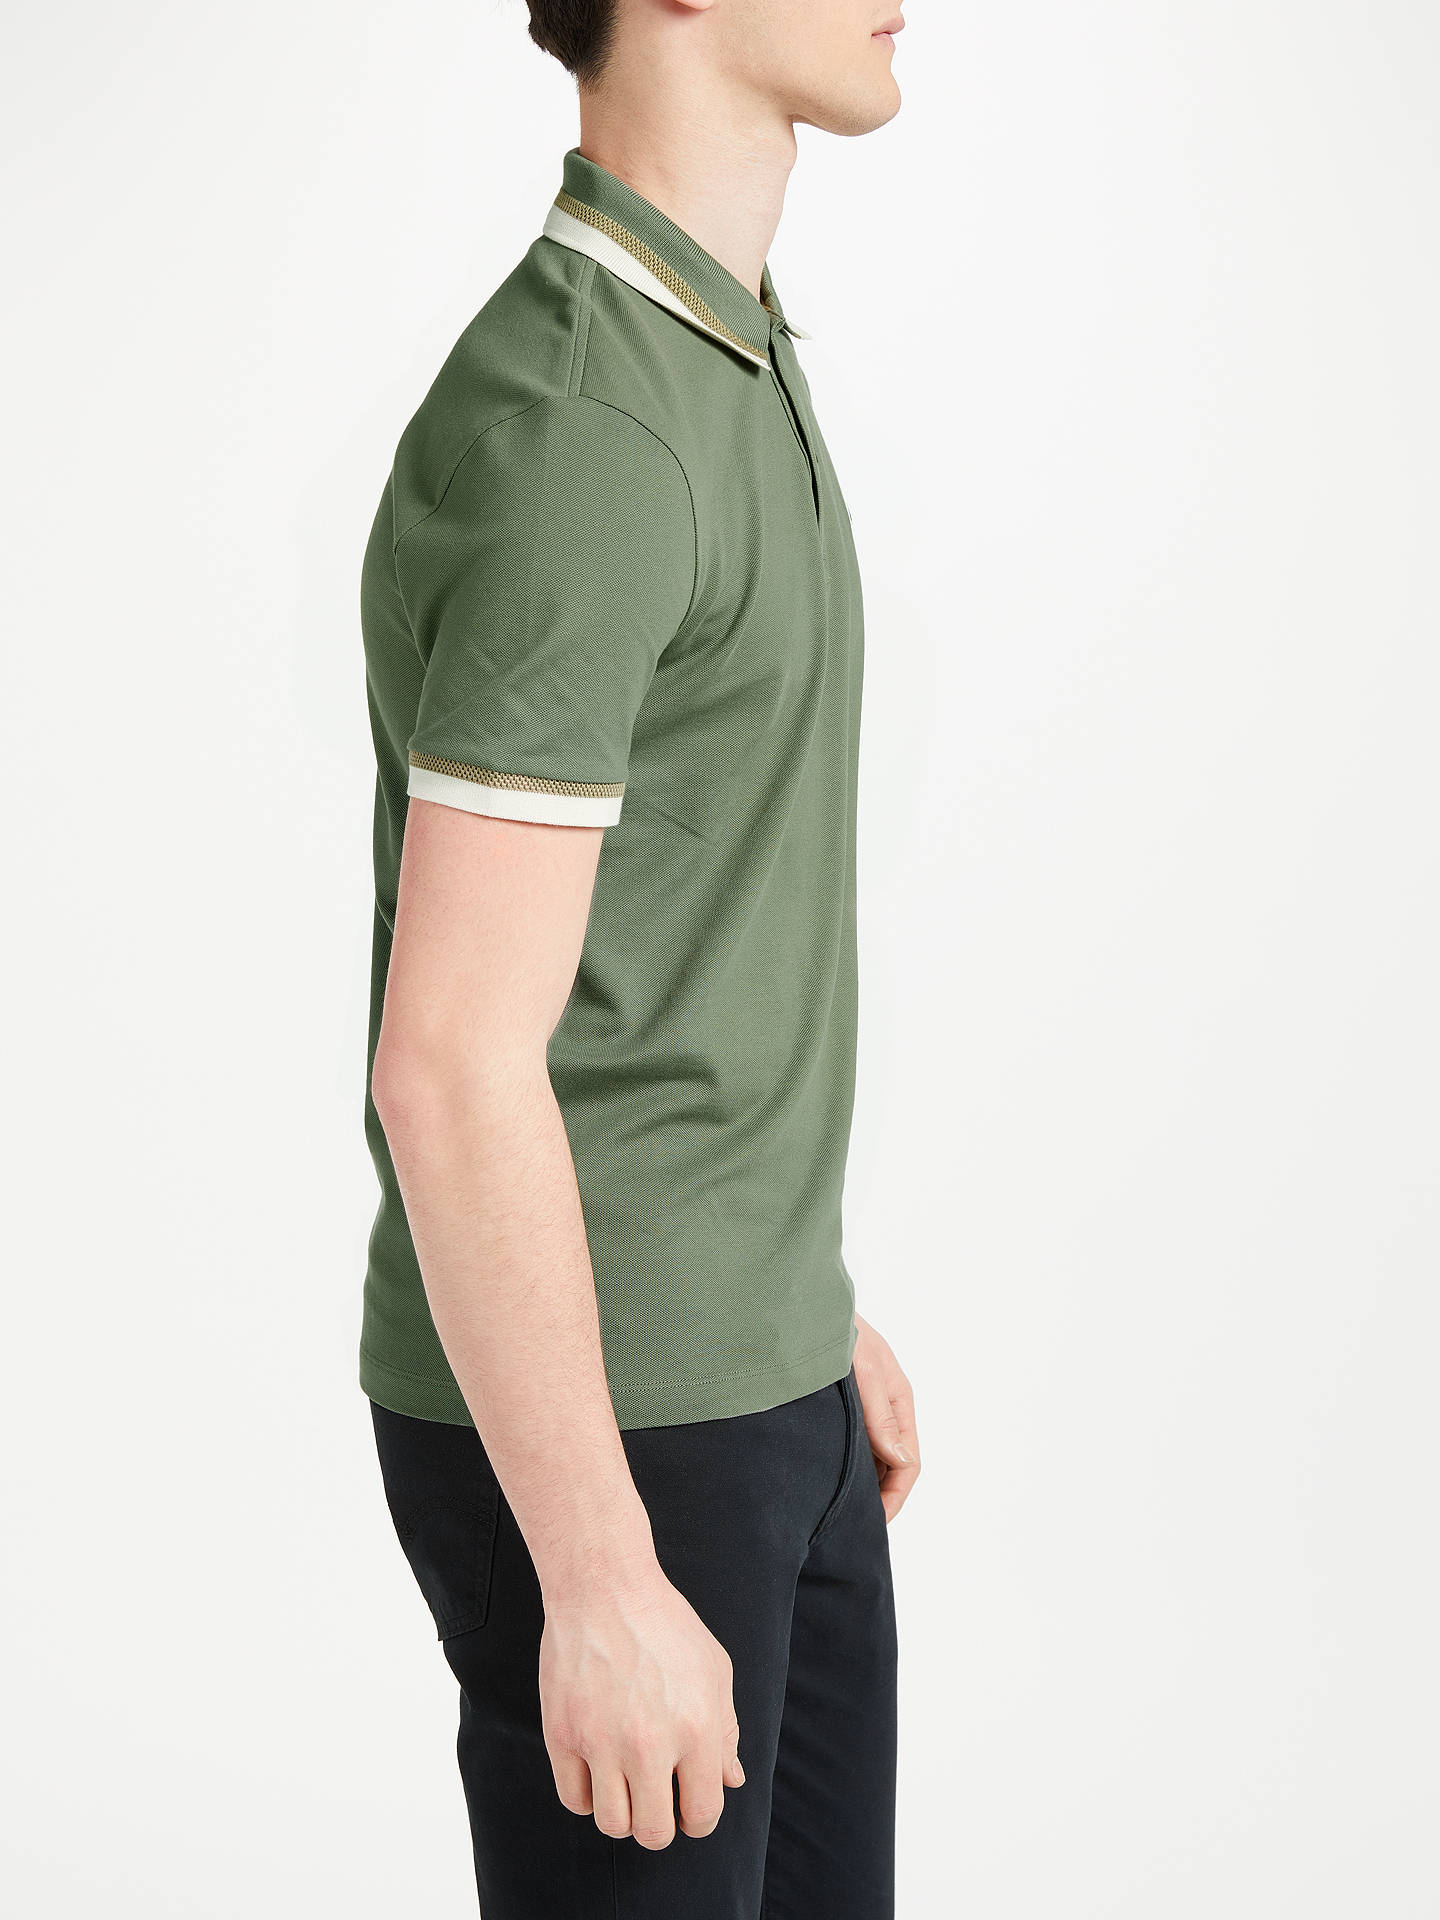 74994304 ... Buy Lacoste Slim Fit Twin Tipped Short Sleeve Polo Shirt, Green, S  Online at